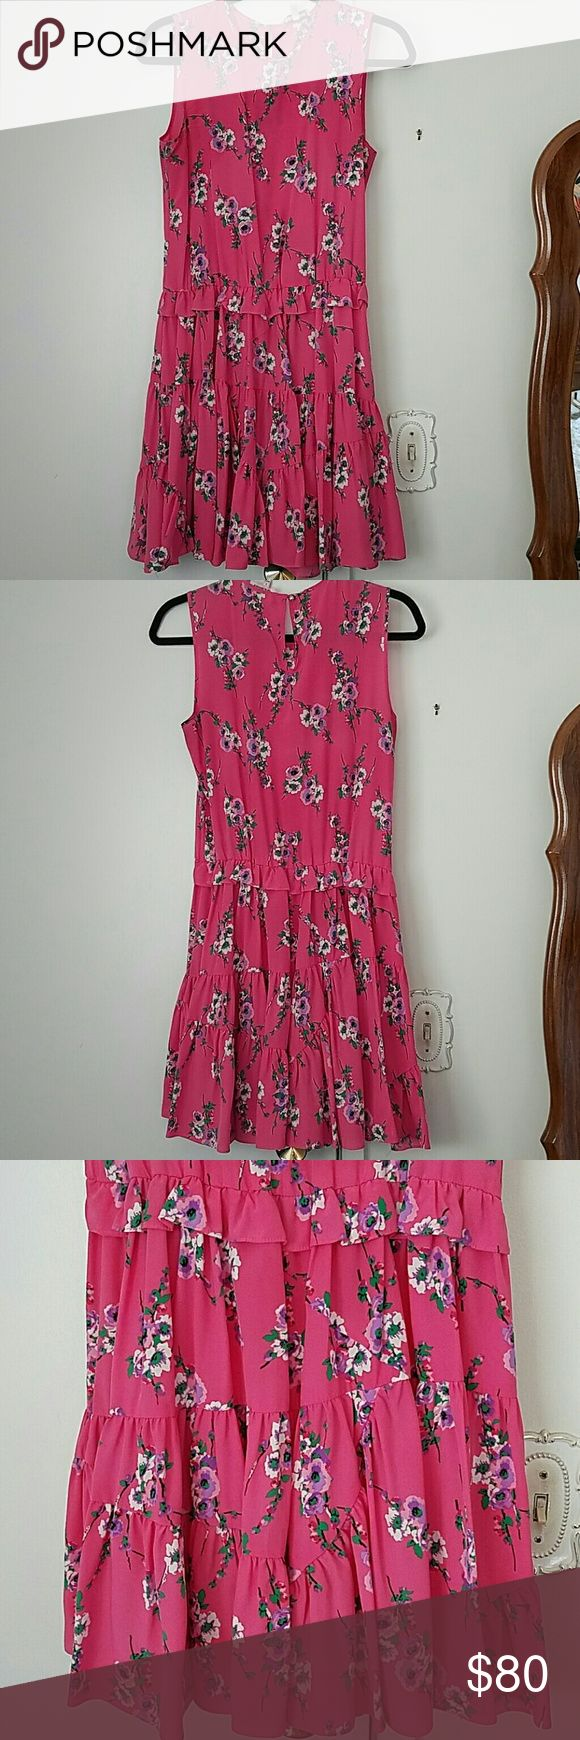 Juicy Couture pink floral dress High neck line classy pink floral dress. 100% silk Juicy Couture dress. Worn maybe twice. Juicy Couture Dresses Midi